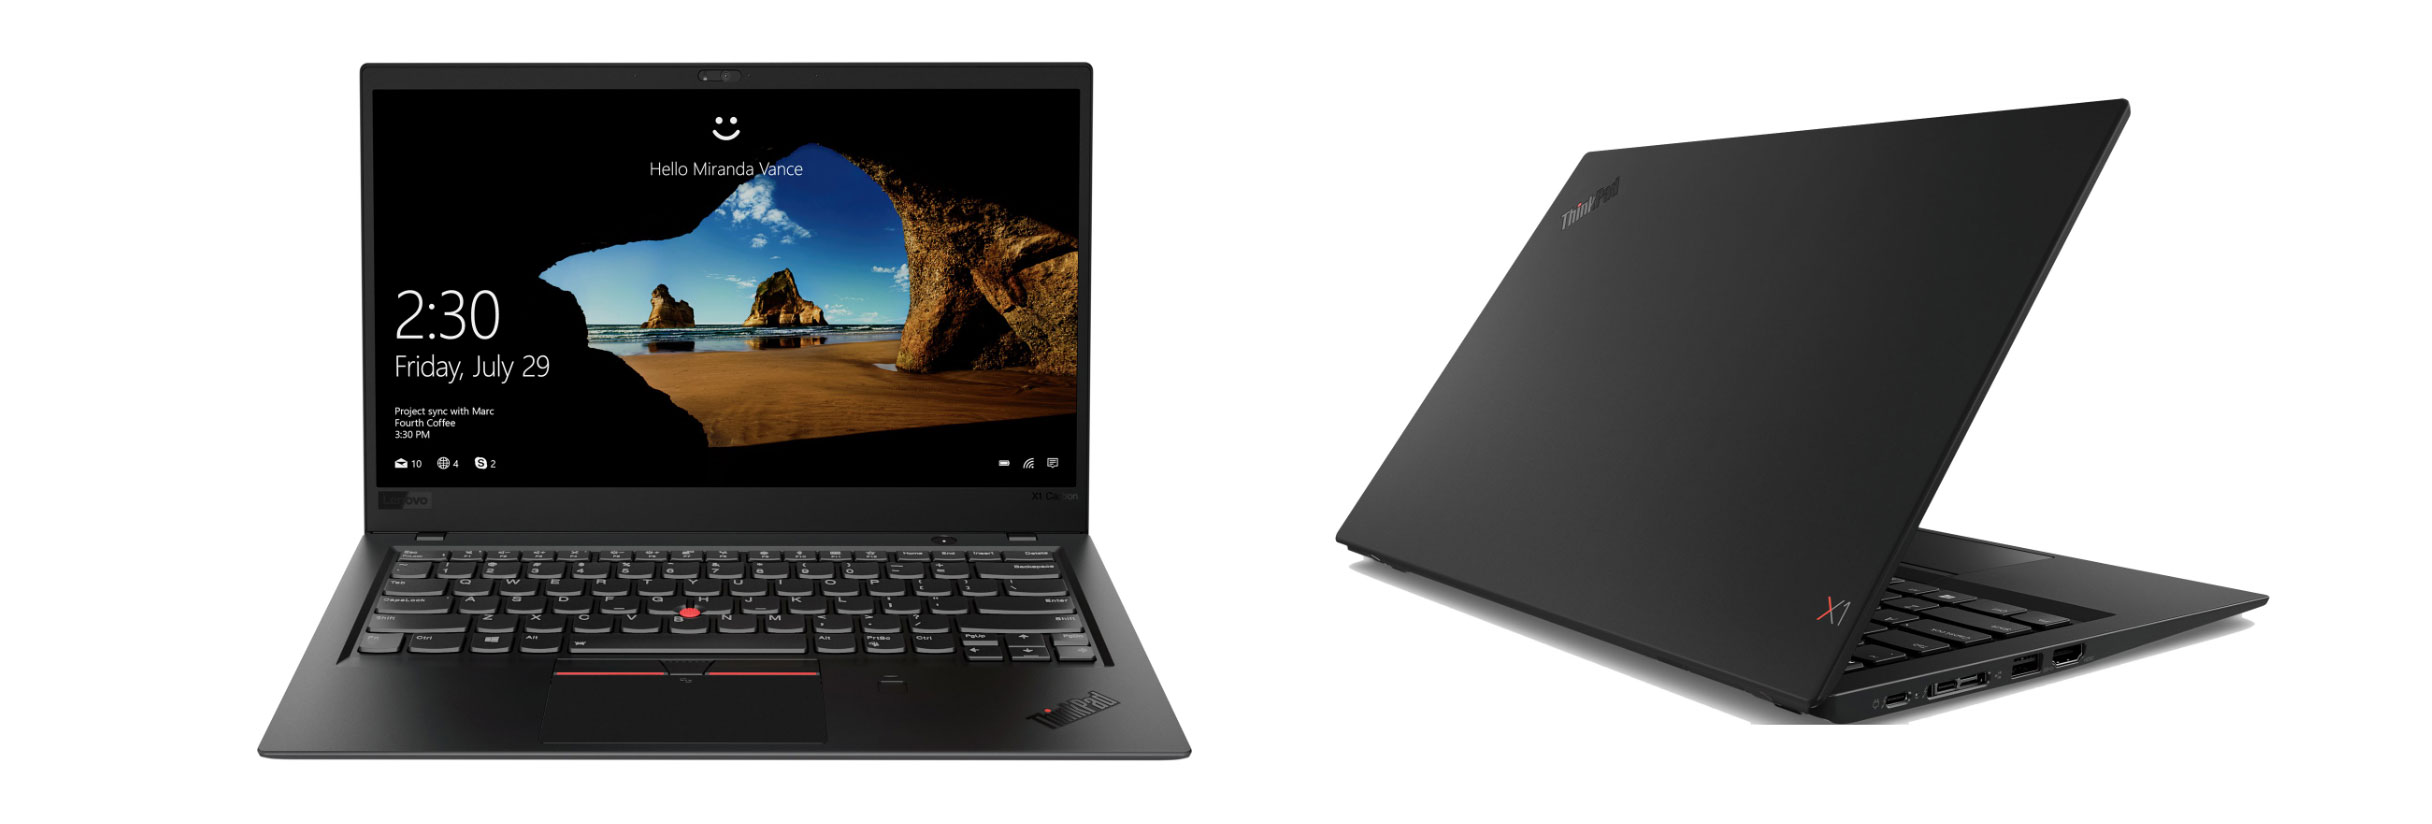 Lenovo ThinkPad X1 Carbon - lighweight and packed full of features, but expensive